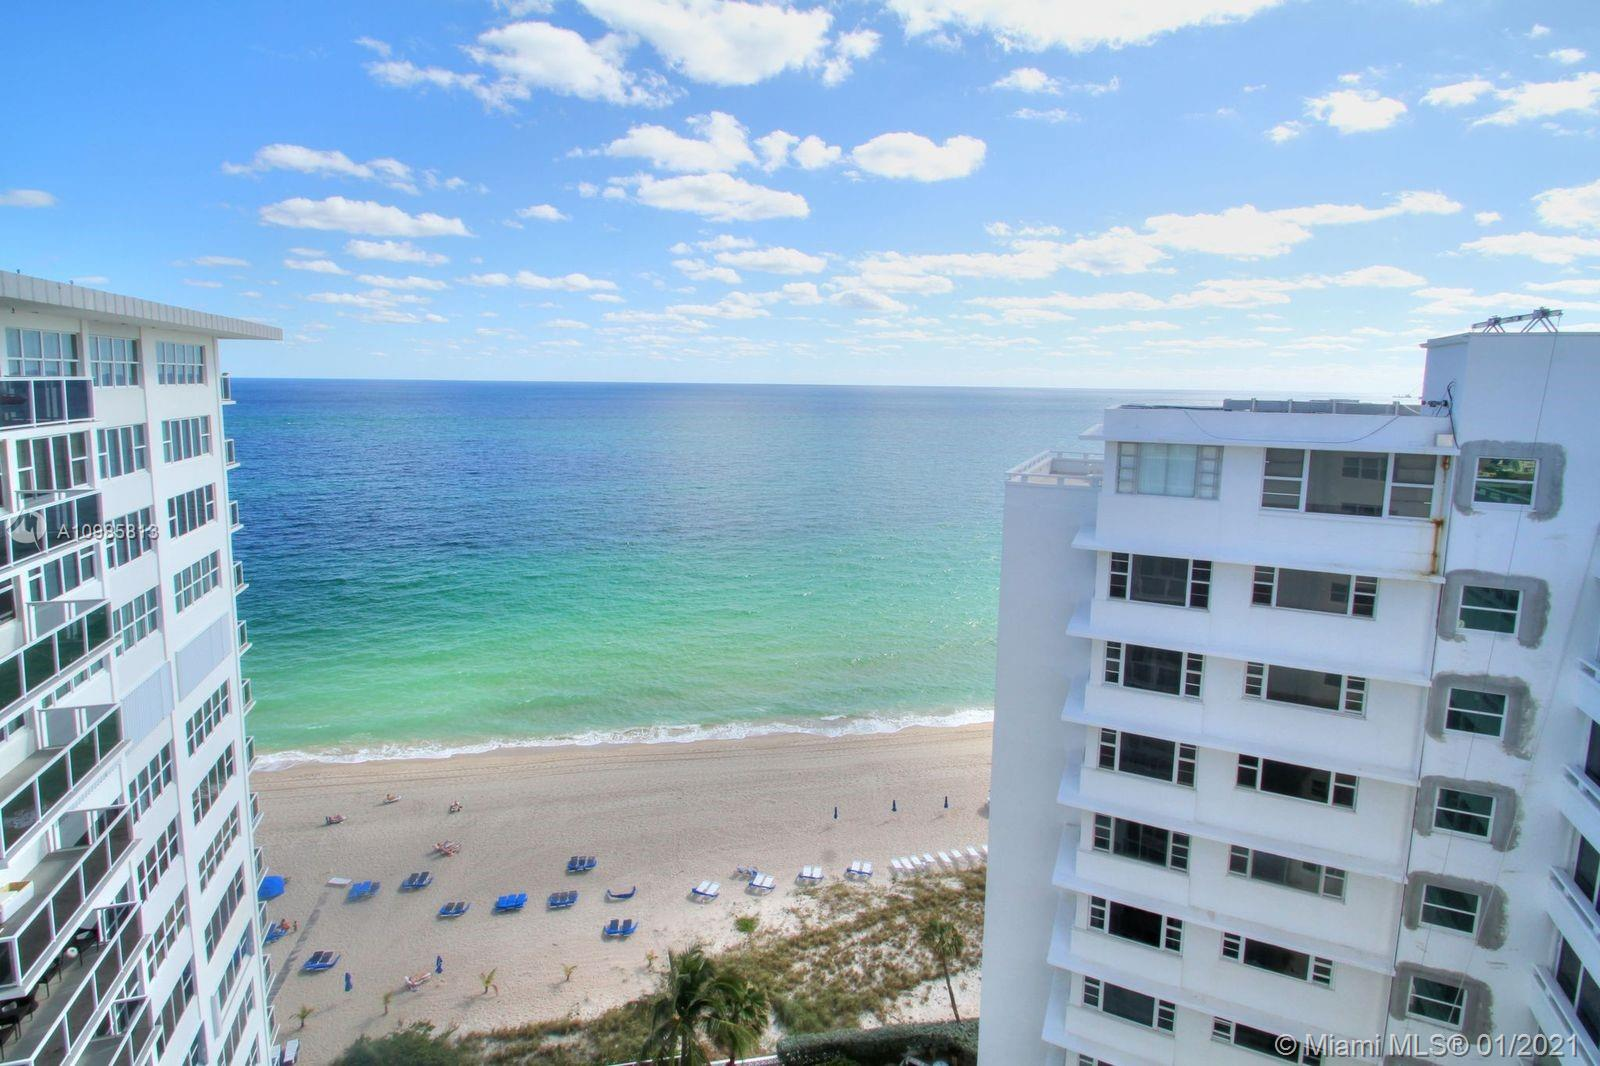 Sought after CORNER Penthouse unit. DIRECT SOUTHEAST OCEAN VIEW. Absolutely breathtaking view from every room. ALL IMPACT GLASS. Two bedrooms, 2 baths & lots of closet space throughout. In unit stack washer & dryer. Furniture negotiable. Some updates. Well cared for unit. Very well managed full service building with helpful & kind staff.  Reasonable association fees of $585. Full Seller paid assessment  for recent major building projects including upgraded glass balconies, hallways, welcoming lobby,new elevators,new fitness & business center & much more. Incredibly large oceanfront heated pool deck with tiki bar,BBQ area,kayak storage & cabanas available.This unit embraces a beautiful beach lifestyle. One bedroom opened to living room.  Can be converted back - has closet and window.